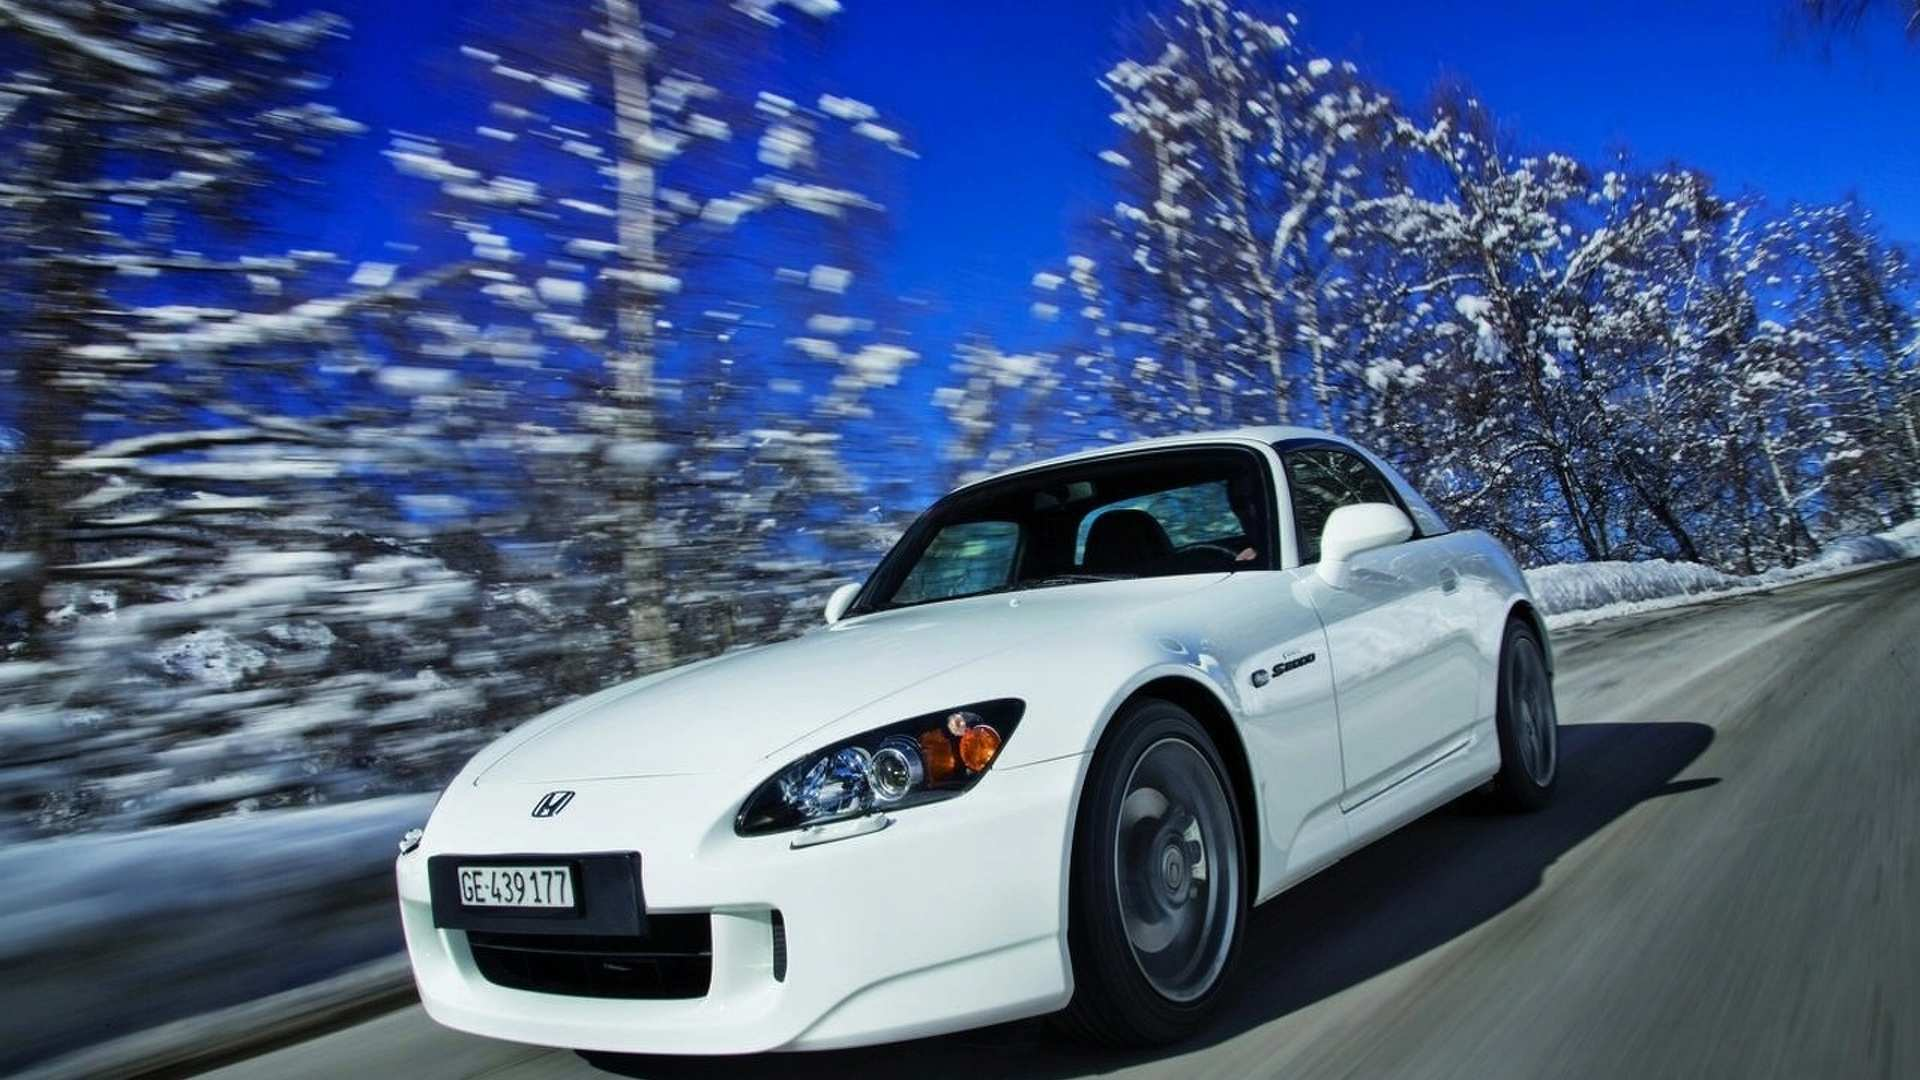 53 New 2020 Honda S2000 Specs And Review